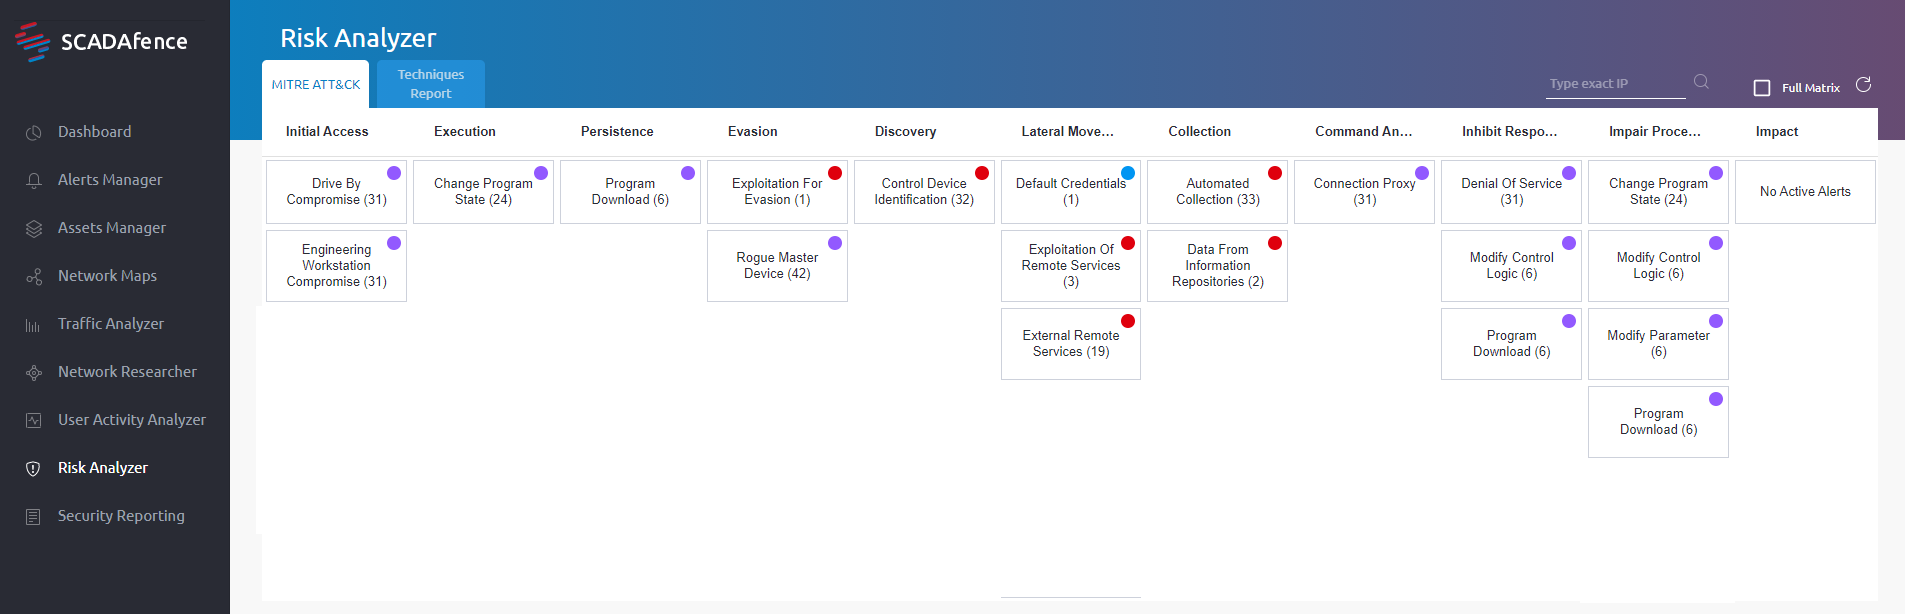 The SCADafence Platform showing all the stages of the attack based on the MITRE ATT&CK framework